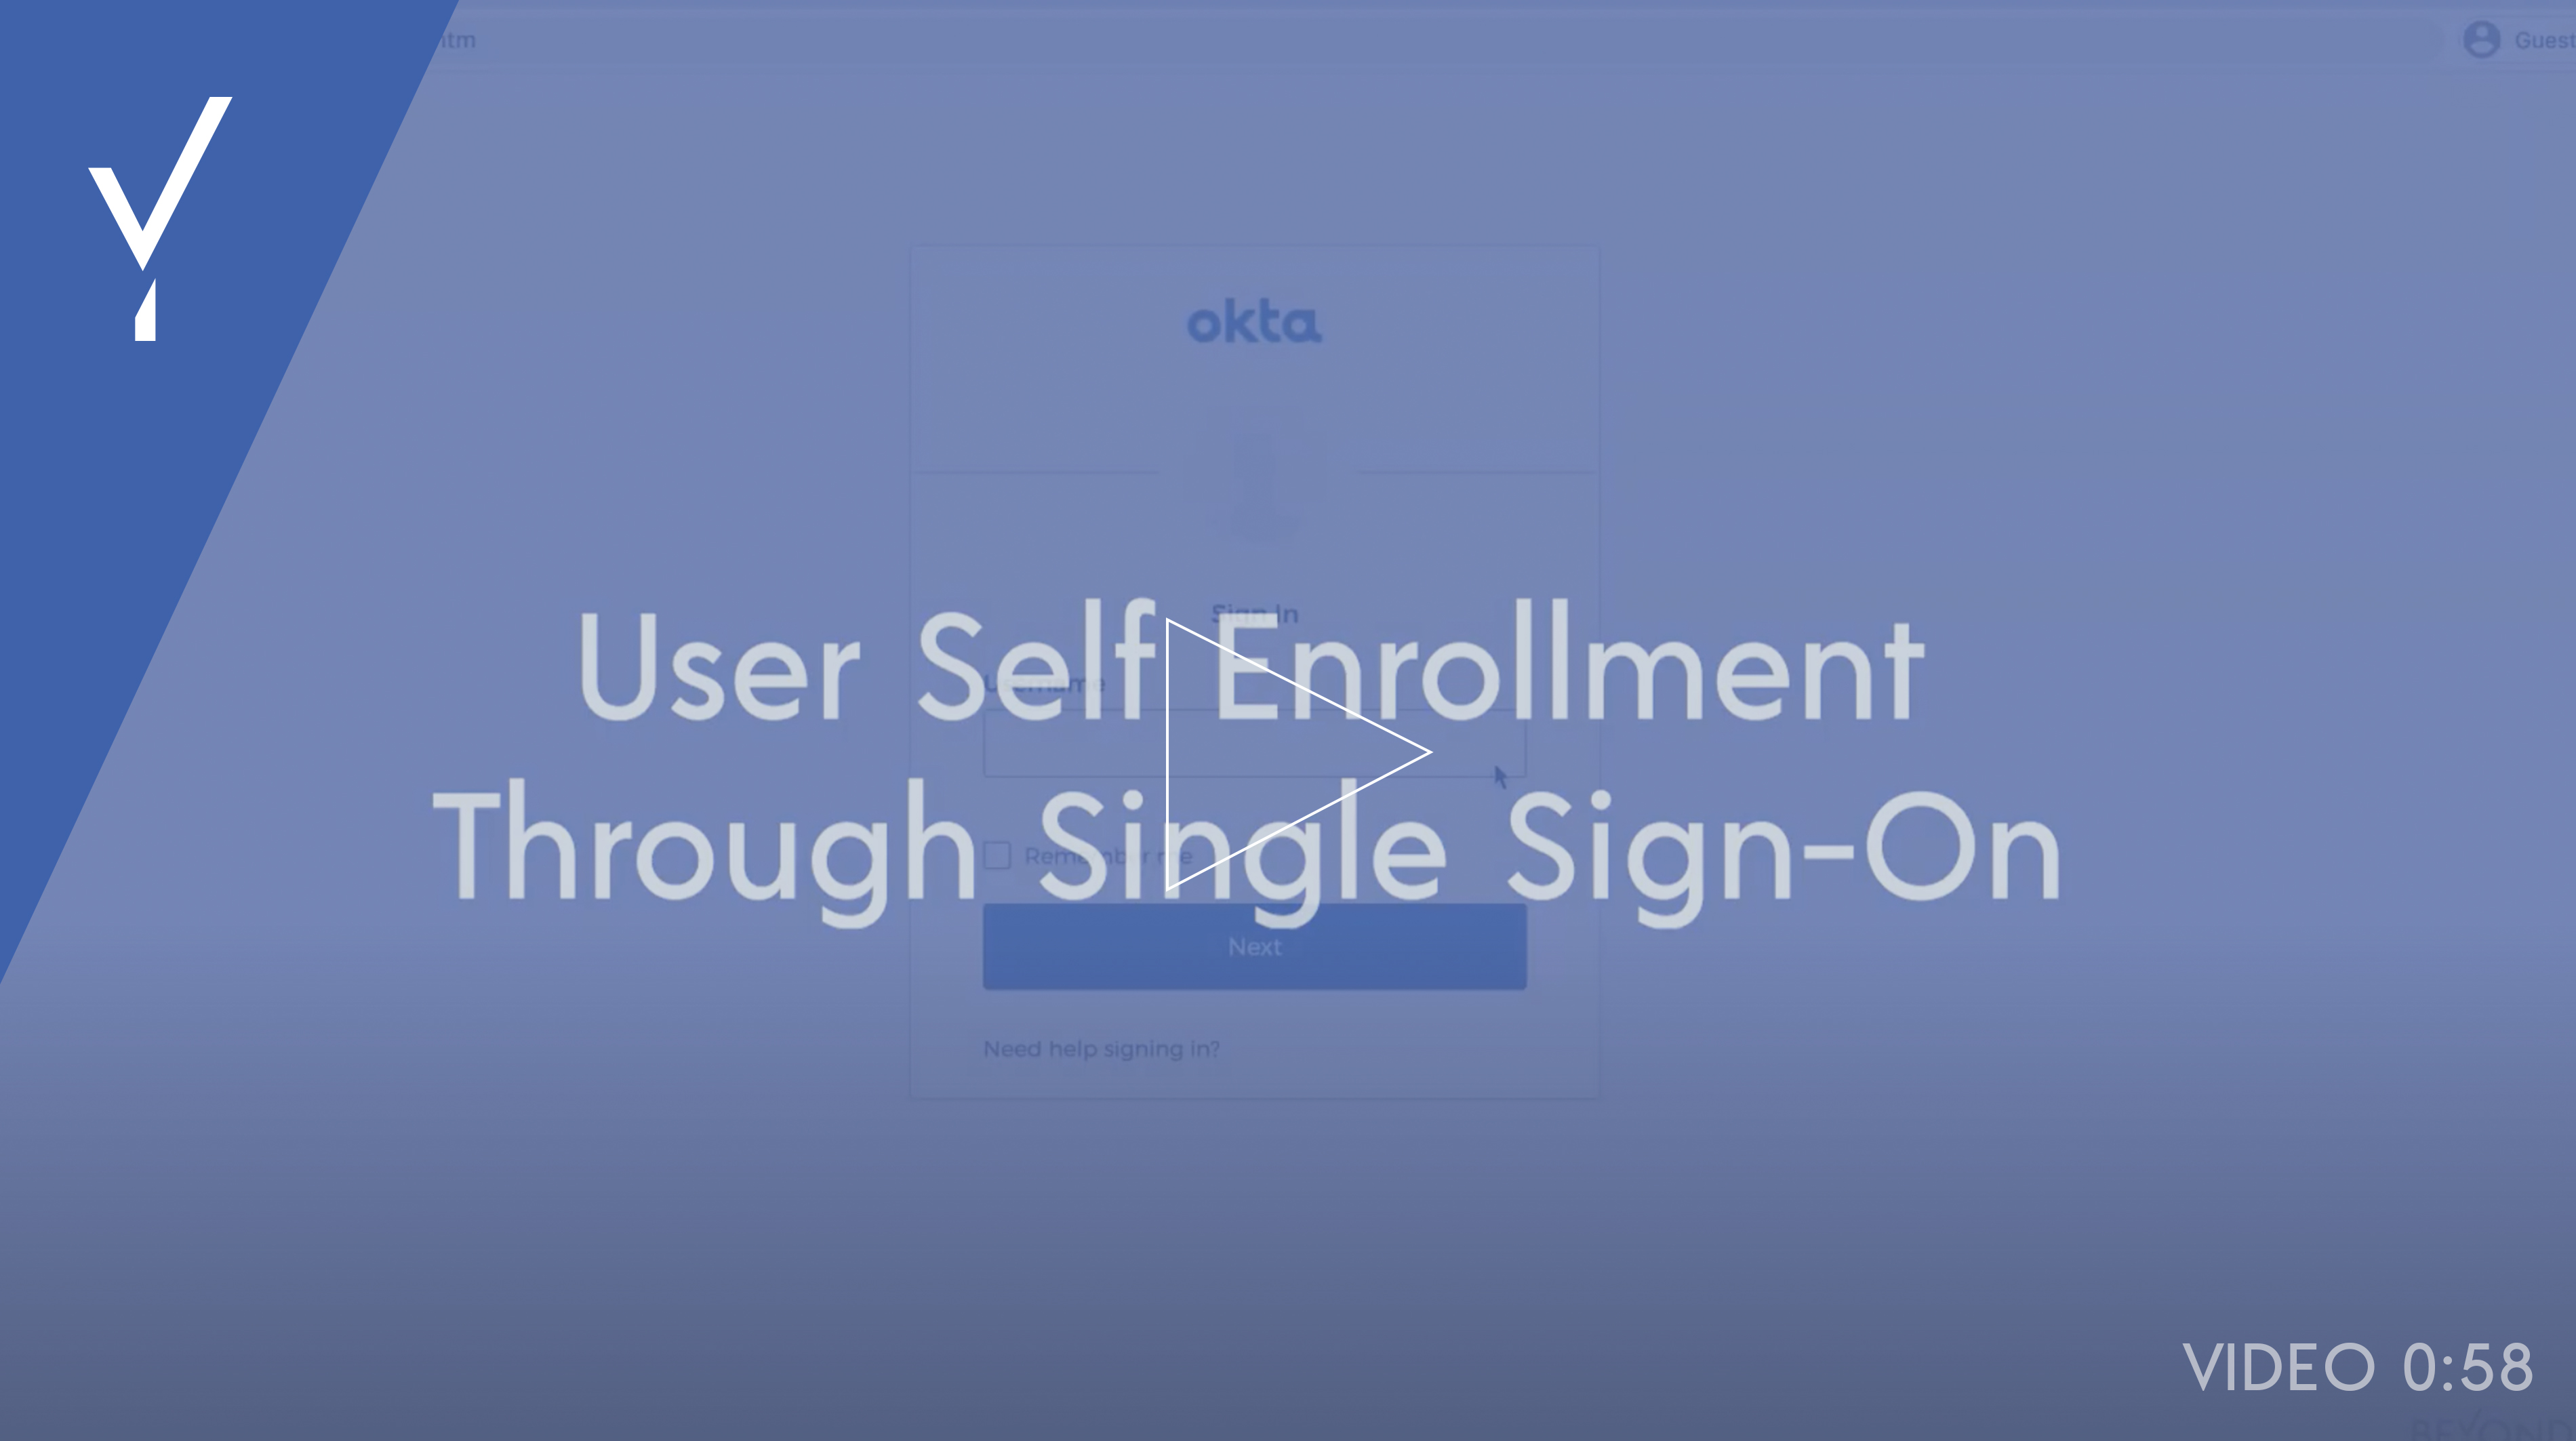 User self enrollment through single sign-on video thumbnail